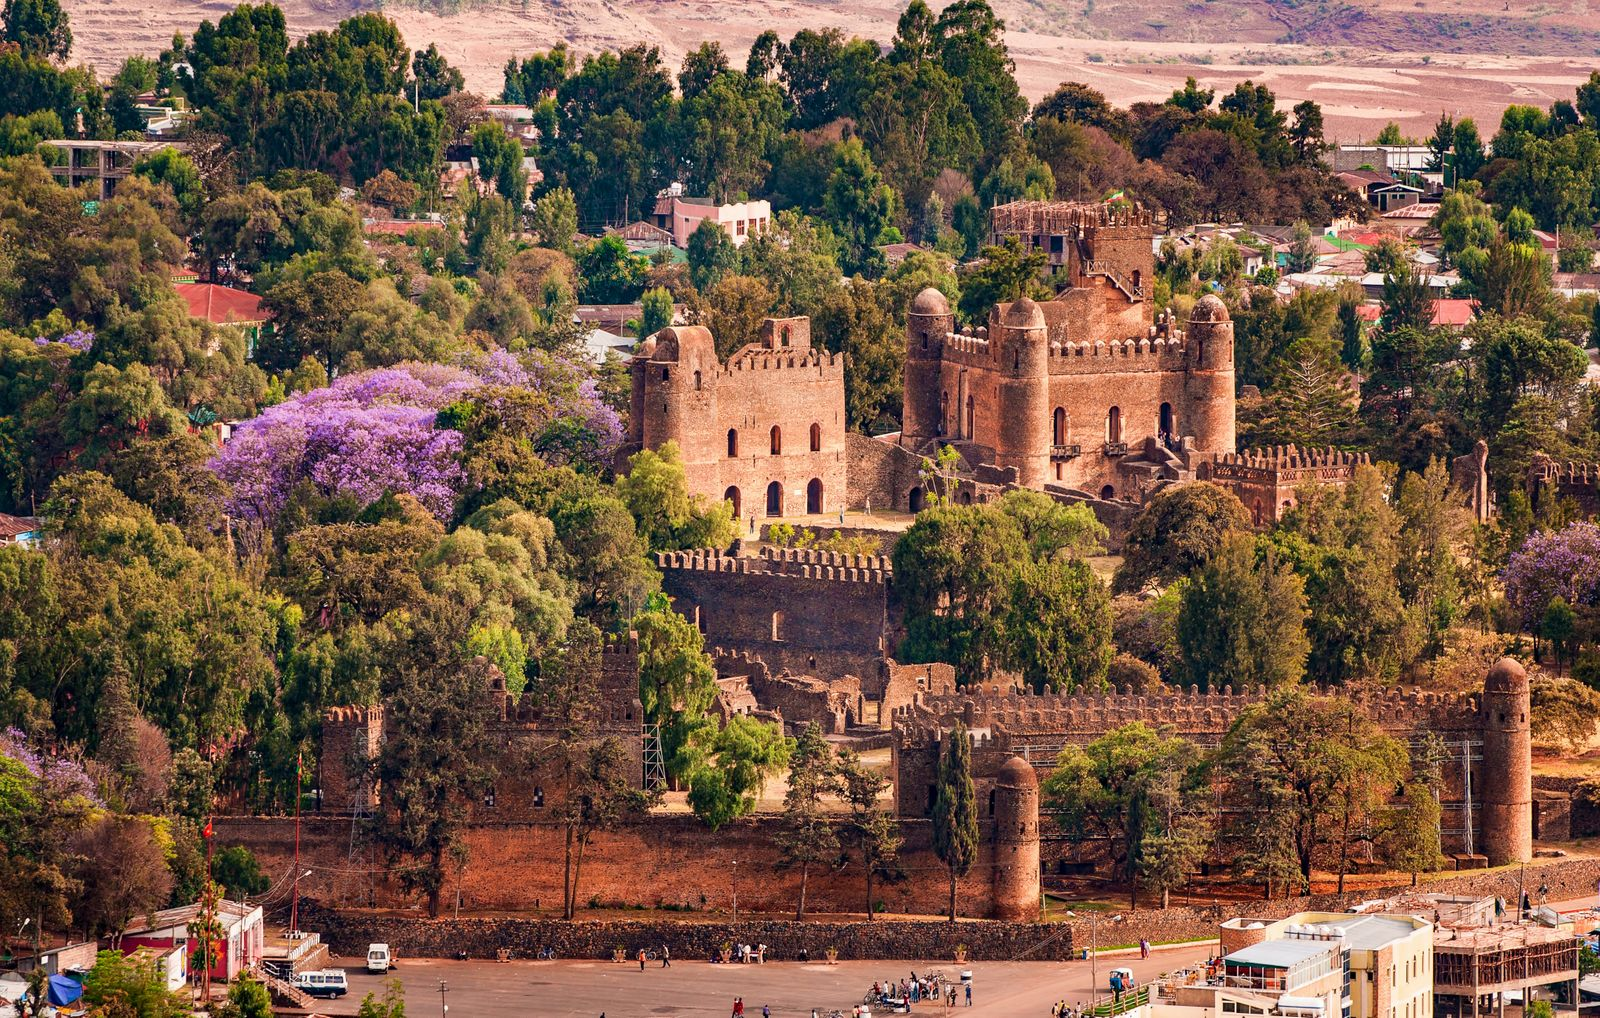 """500px Photo ID: 154495445 - Gondar previously served as the capital of the Ethiopian Empire. The city holds the remains of several royal castles, including those in Fasil Ghebbi (the Royal Enclosure), for which Gondar has been called the """"Camelot of Africa"""". King Fasil (Fasiledes) settled in Gondar and established it as a permanent capital in 1636. After Fasil, successive kings continued building, improving the techniques and architectural style. Before its decline in the late eighteenth century, the royal court had developed from a camp into a fortified compound called Fasil Ghebbi, consisting of six major building complexes surrounded by a wall 900 metres long. There are some twenty palaces and royal buildings and thirty churches in the area."""